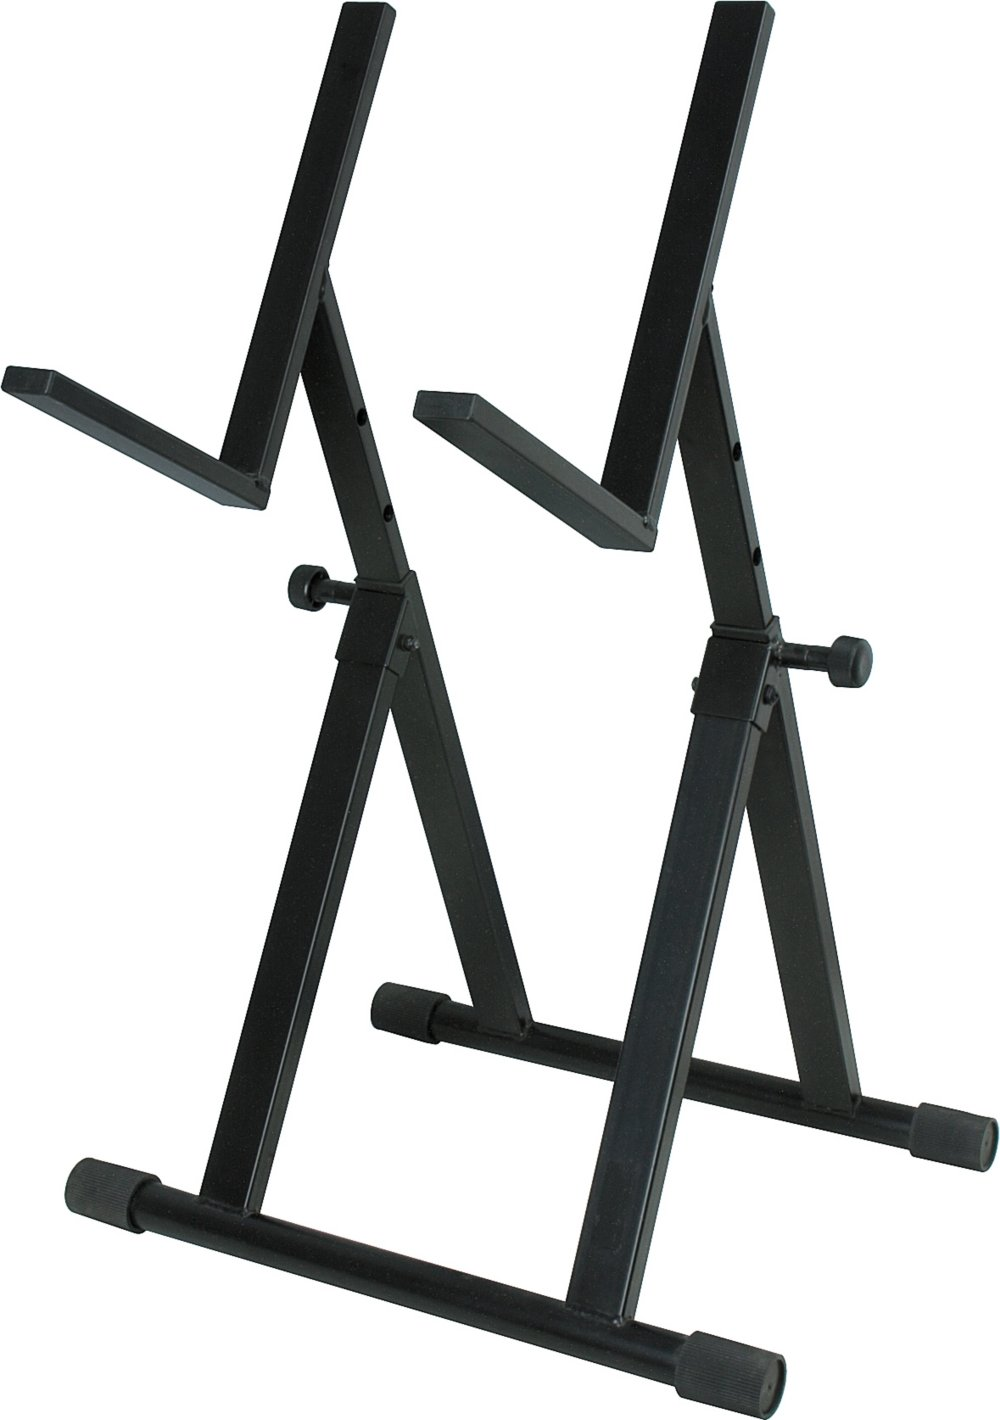 Musician's Gear Deluxe Amp Stand Black Musician's Gear AS-MG